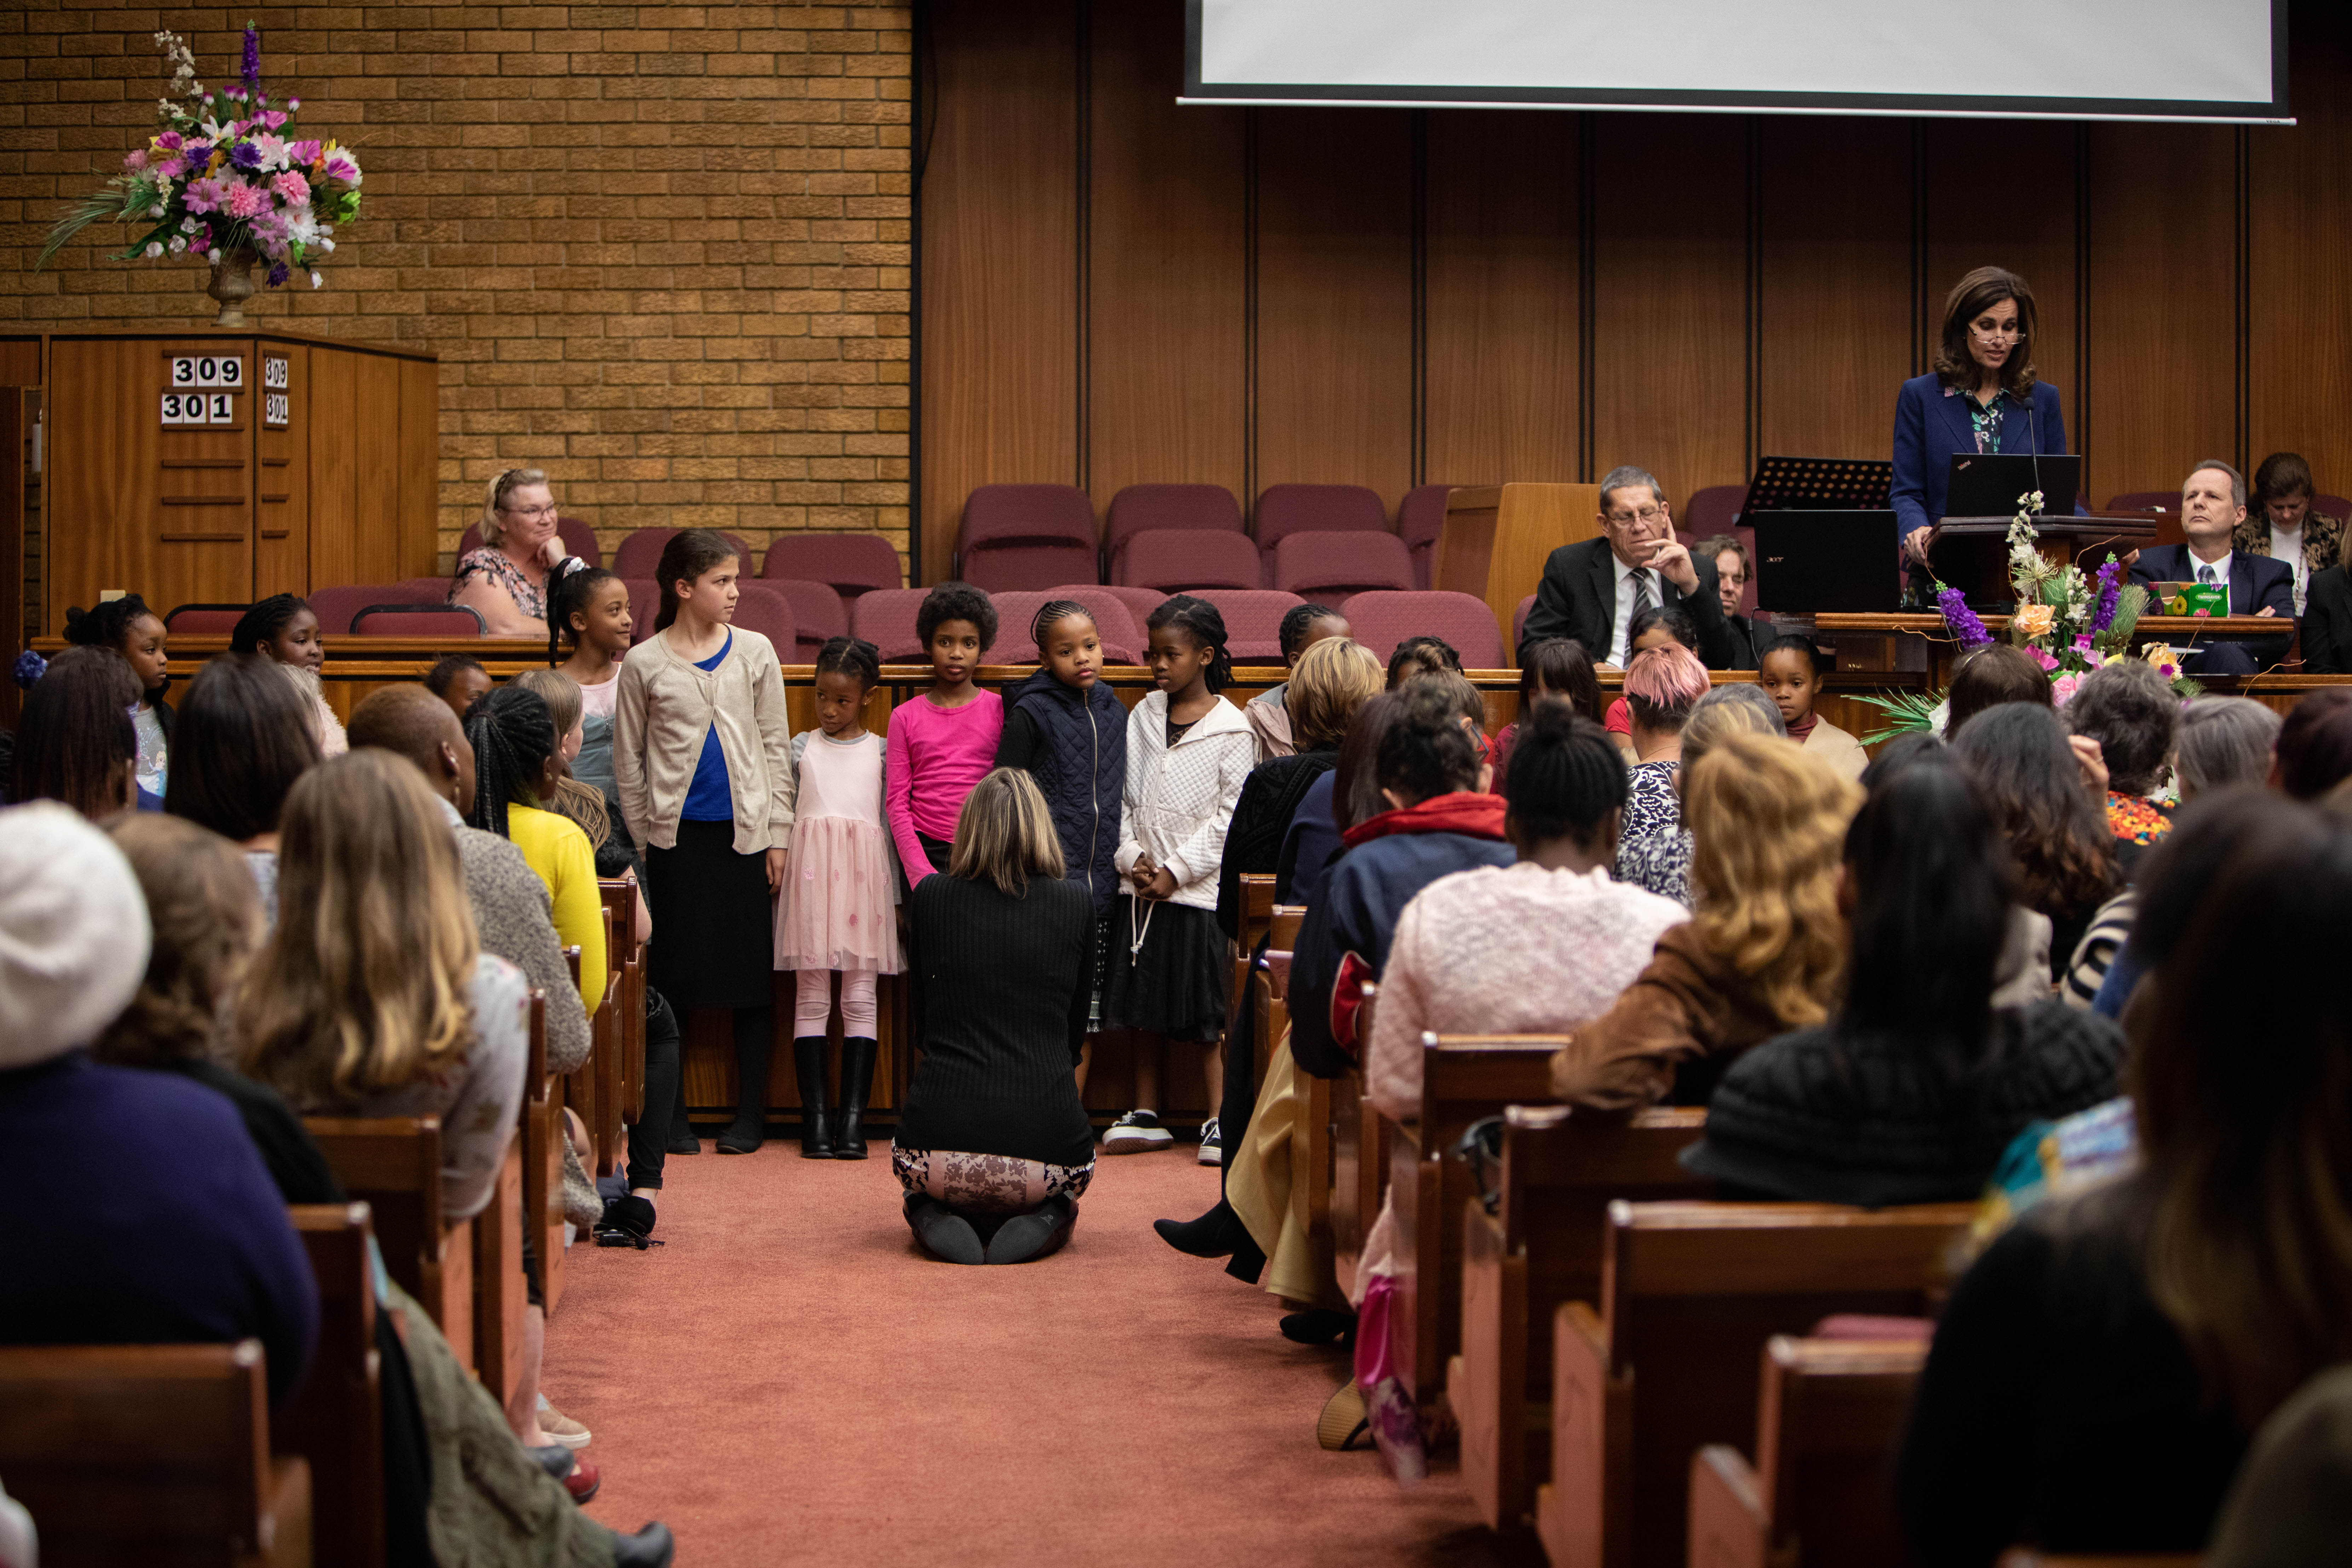 Youth members gather at the front of the chapel during a training with Sister Lisa L. Harkness in Cape Town, South Africa, in May 2019.